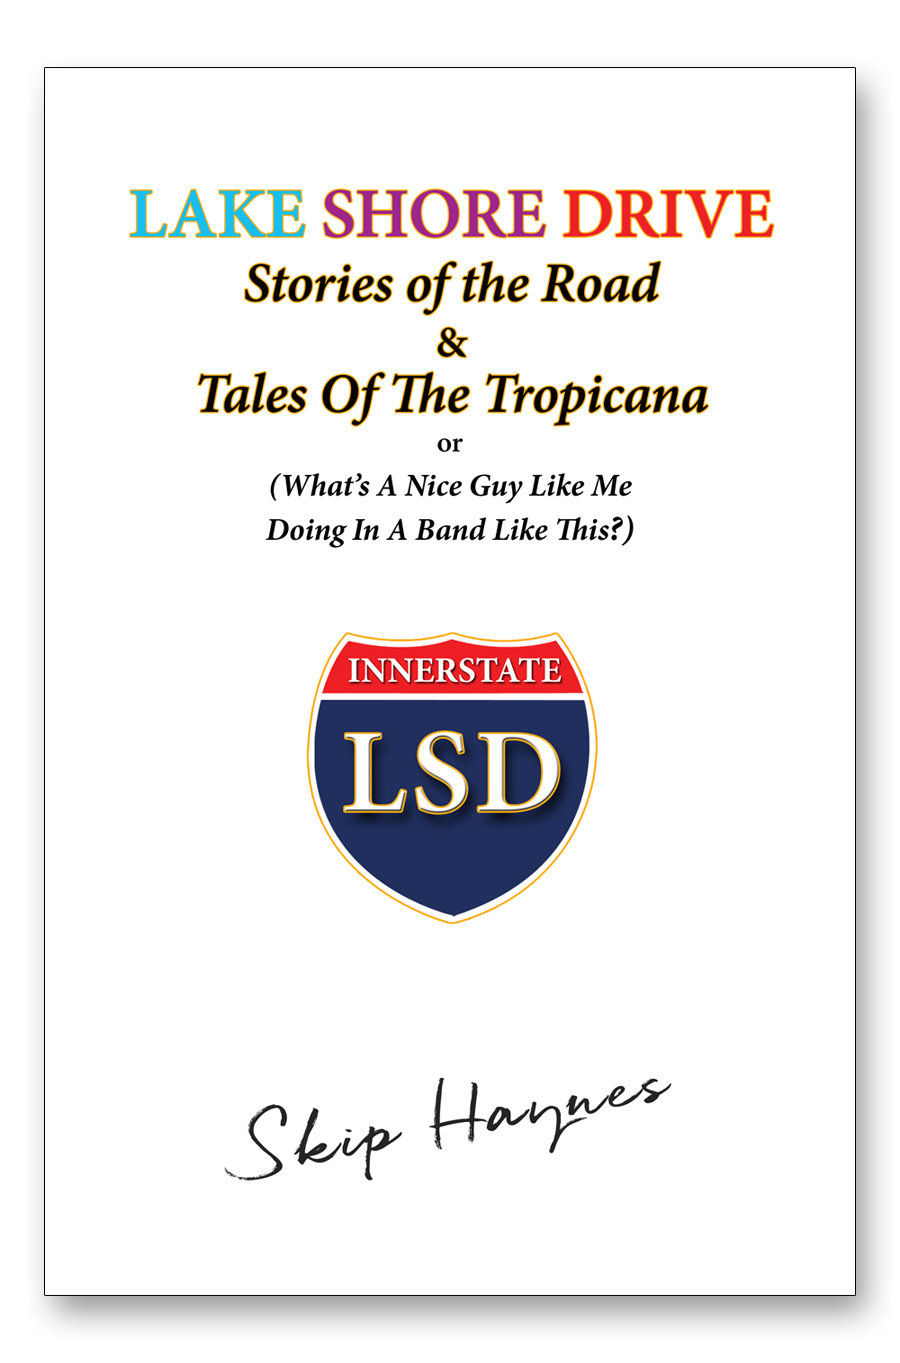 LSD Road Stories Book Cover